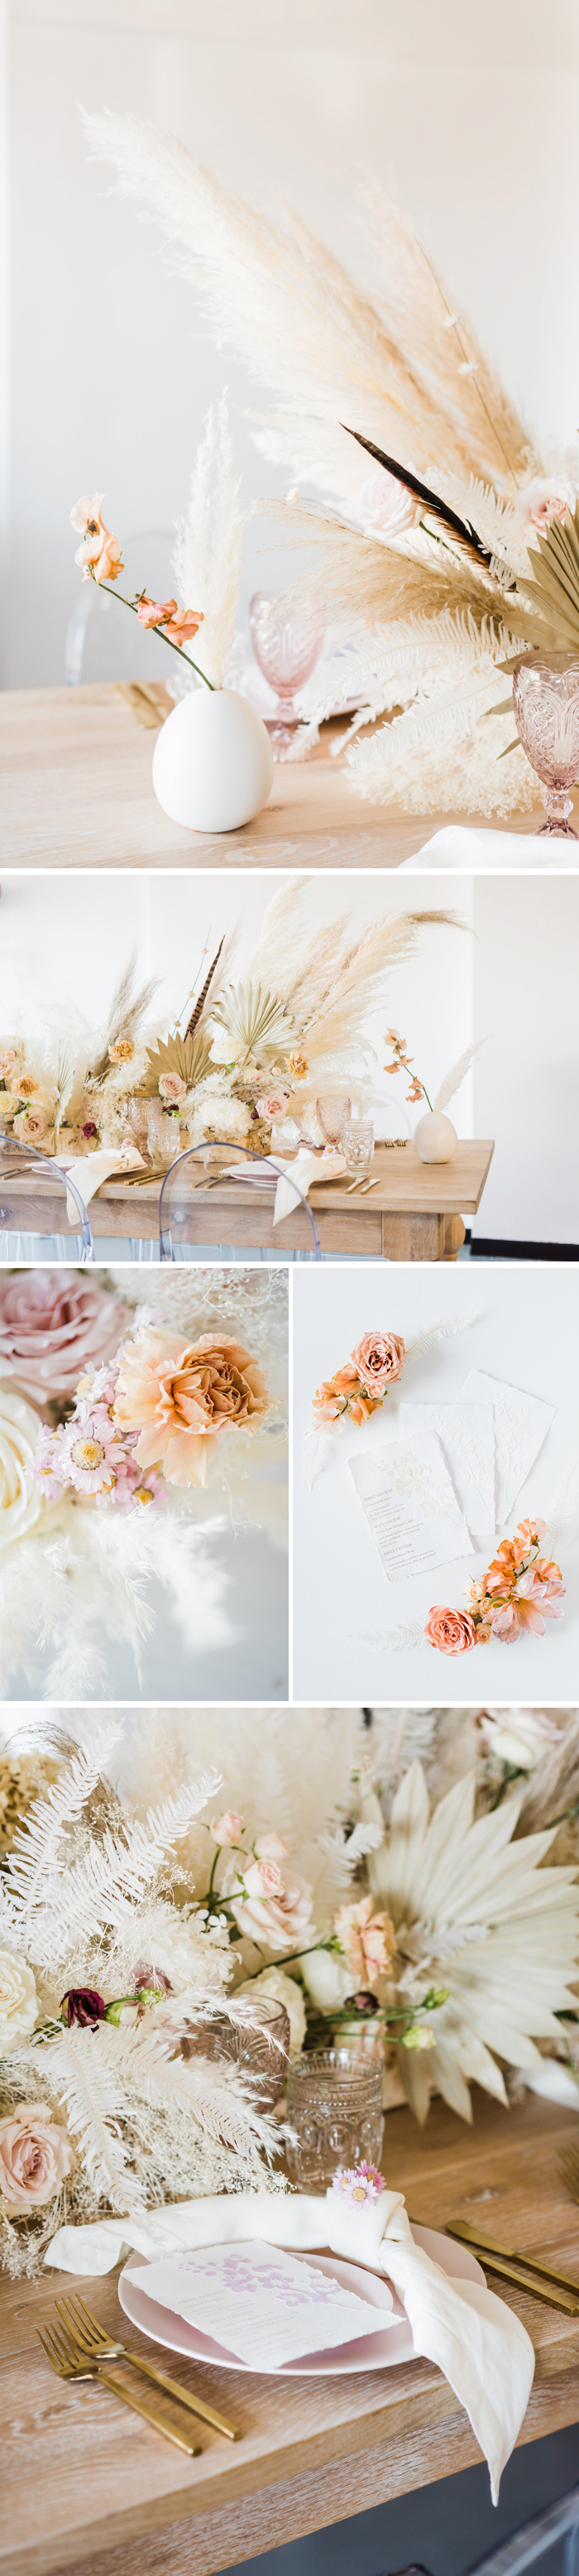 Pampas arrangements, muted flower colors, neutral table setting, and custom paper menus for wedding inspiration